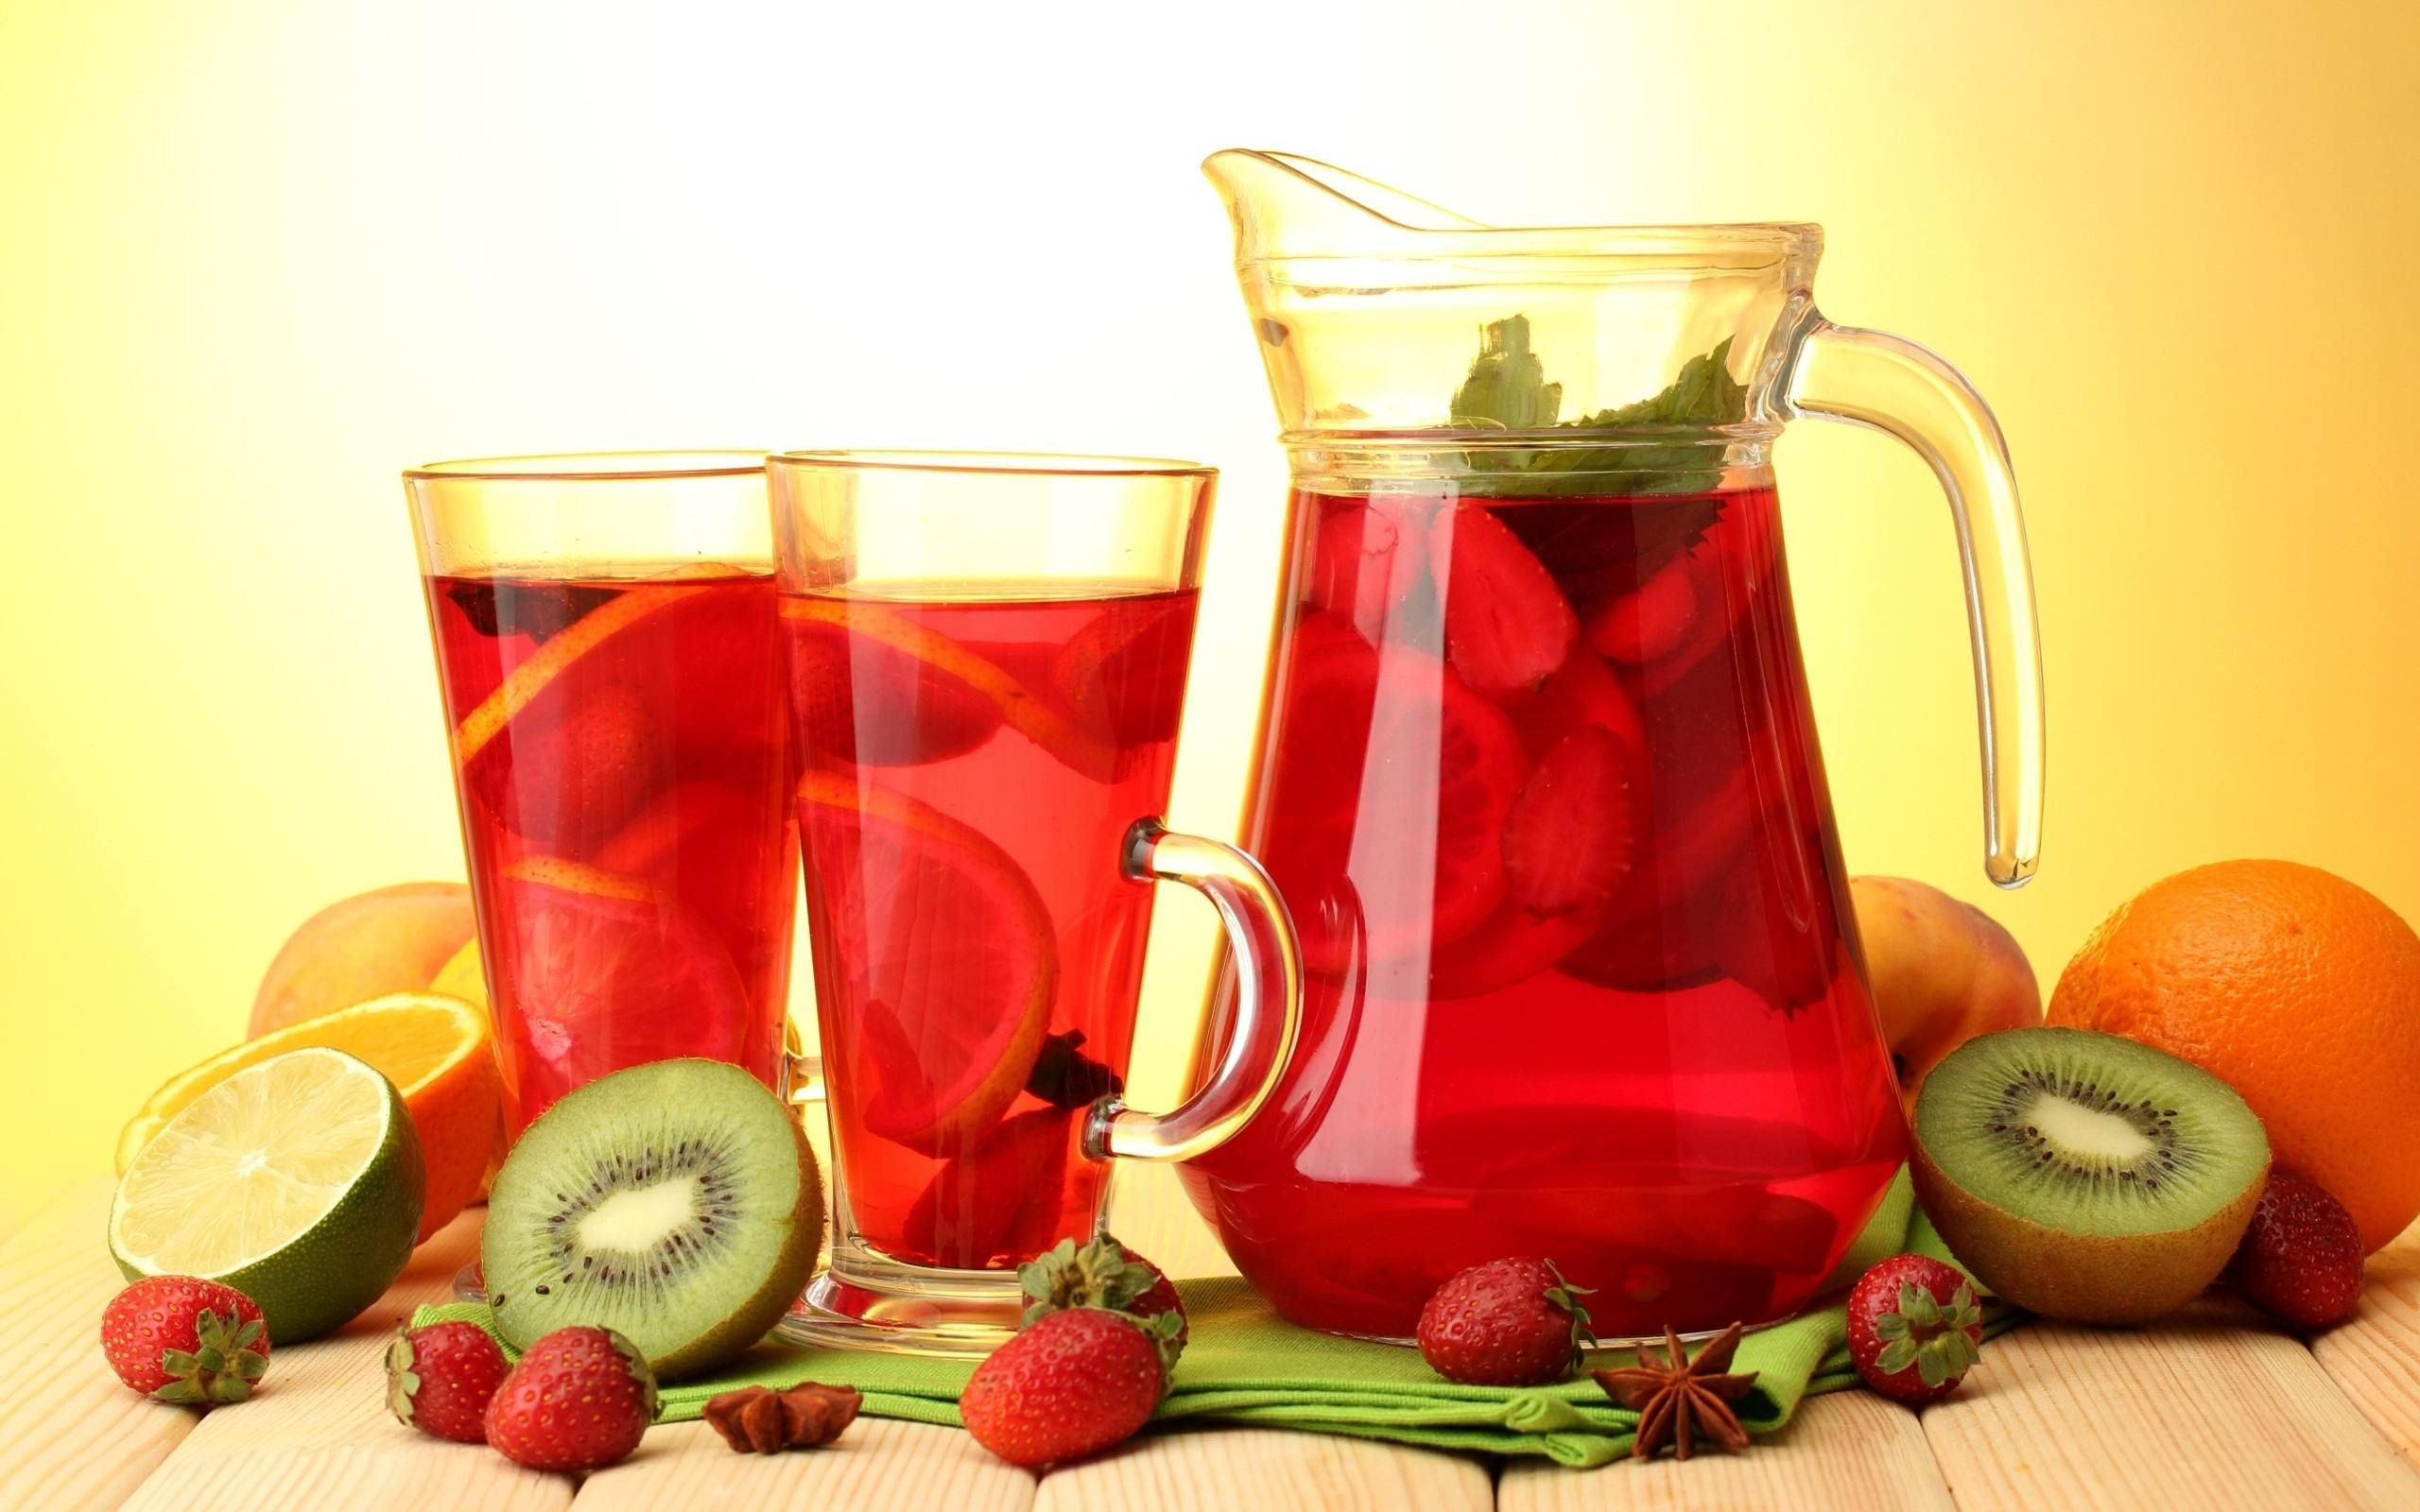 Fresh juice and fruits in hd photos cute babies photos collection - Four Glasses Of Fruit Juice Near Fruit Jpg 815 800 Fresh Juice Pinterest Juice Fruit Juice And Herbs